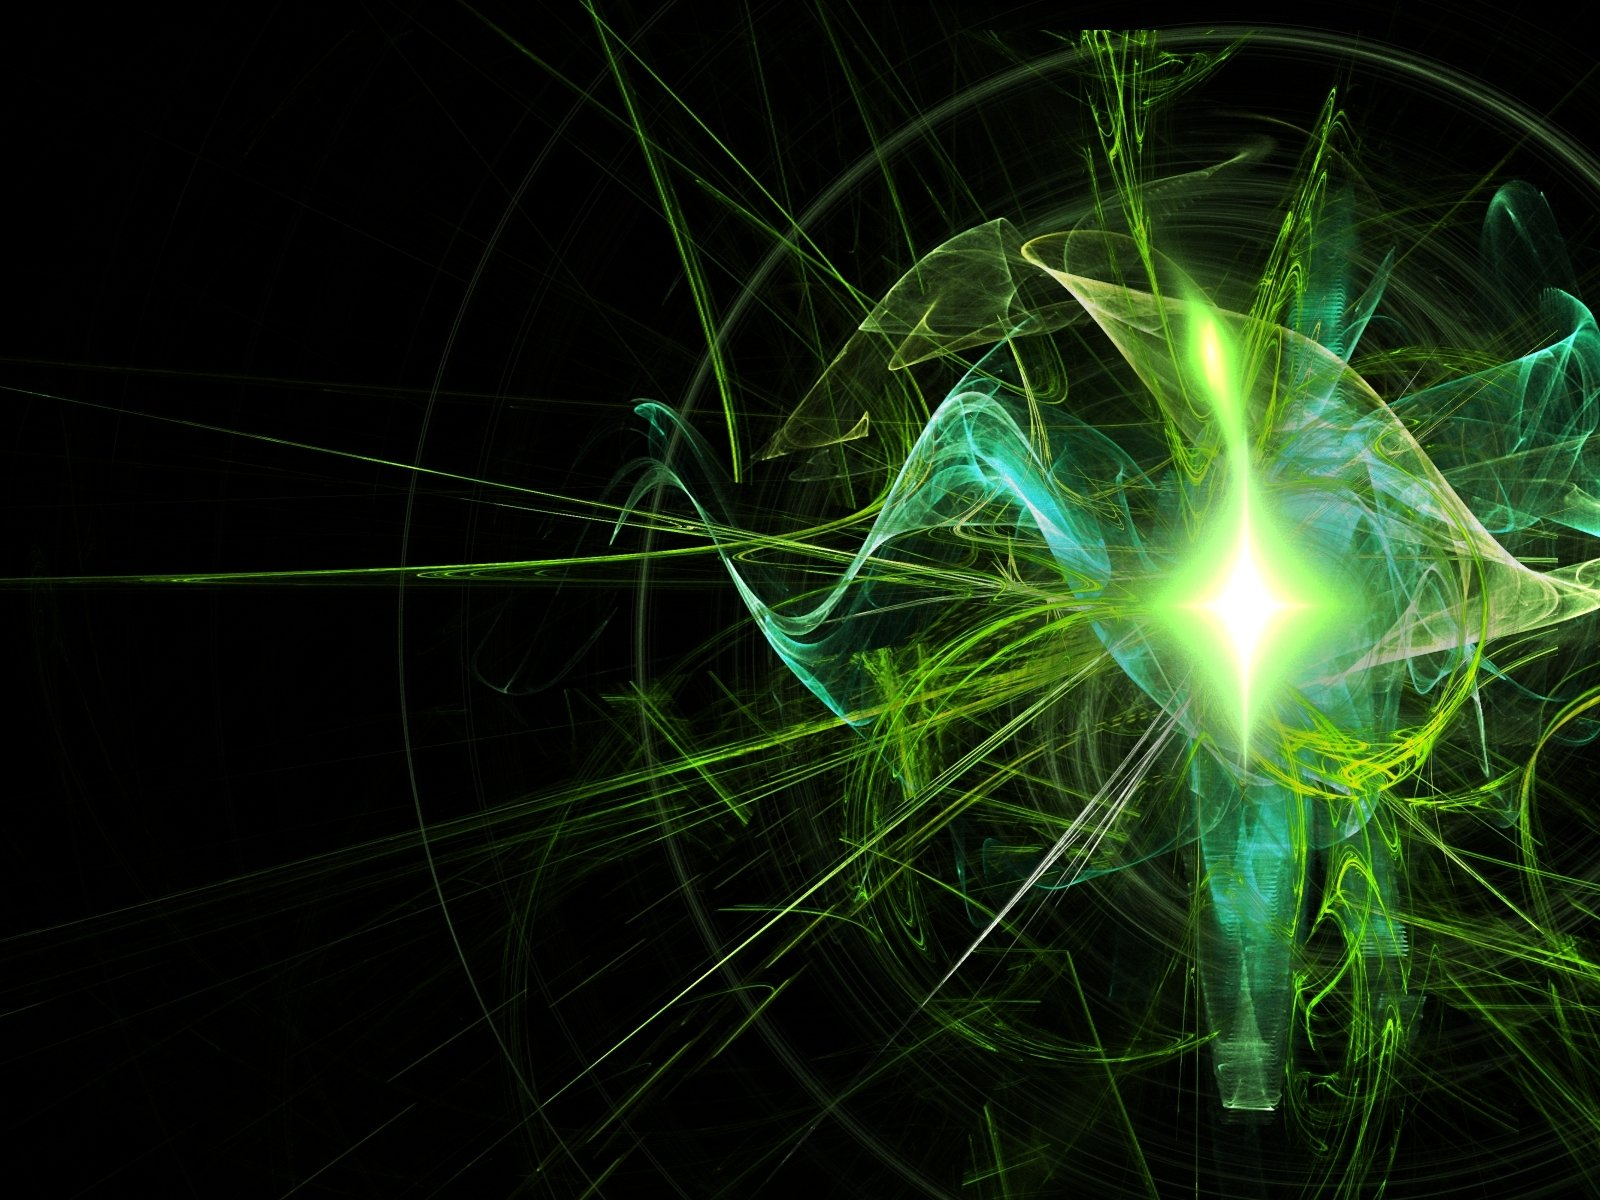 Abstract - Green  Portal (Video Game) Light Lines Supernova Pink Abstract Wallpaper